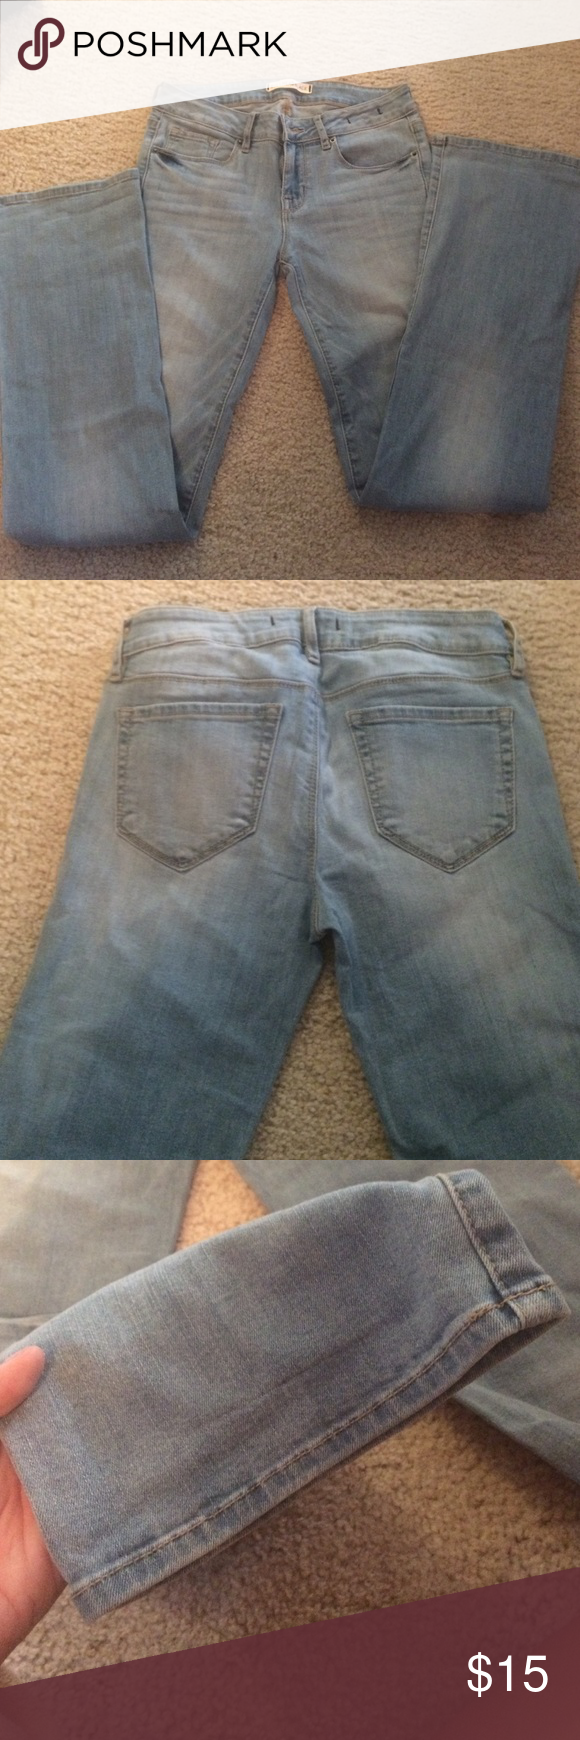 Bullhead Jeans Light blue bullhead jeans. Never worn. Same as the other listing just a different color. Bundle & save! Both are a 7R, regular length. Bullhead Jeans Boot Cut